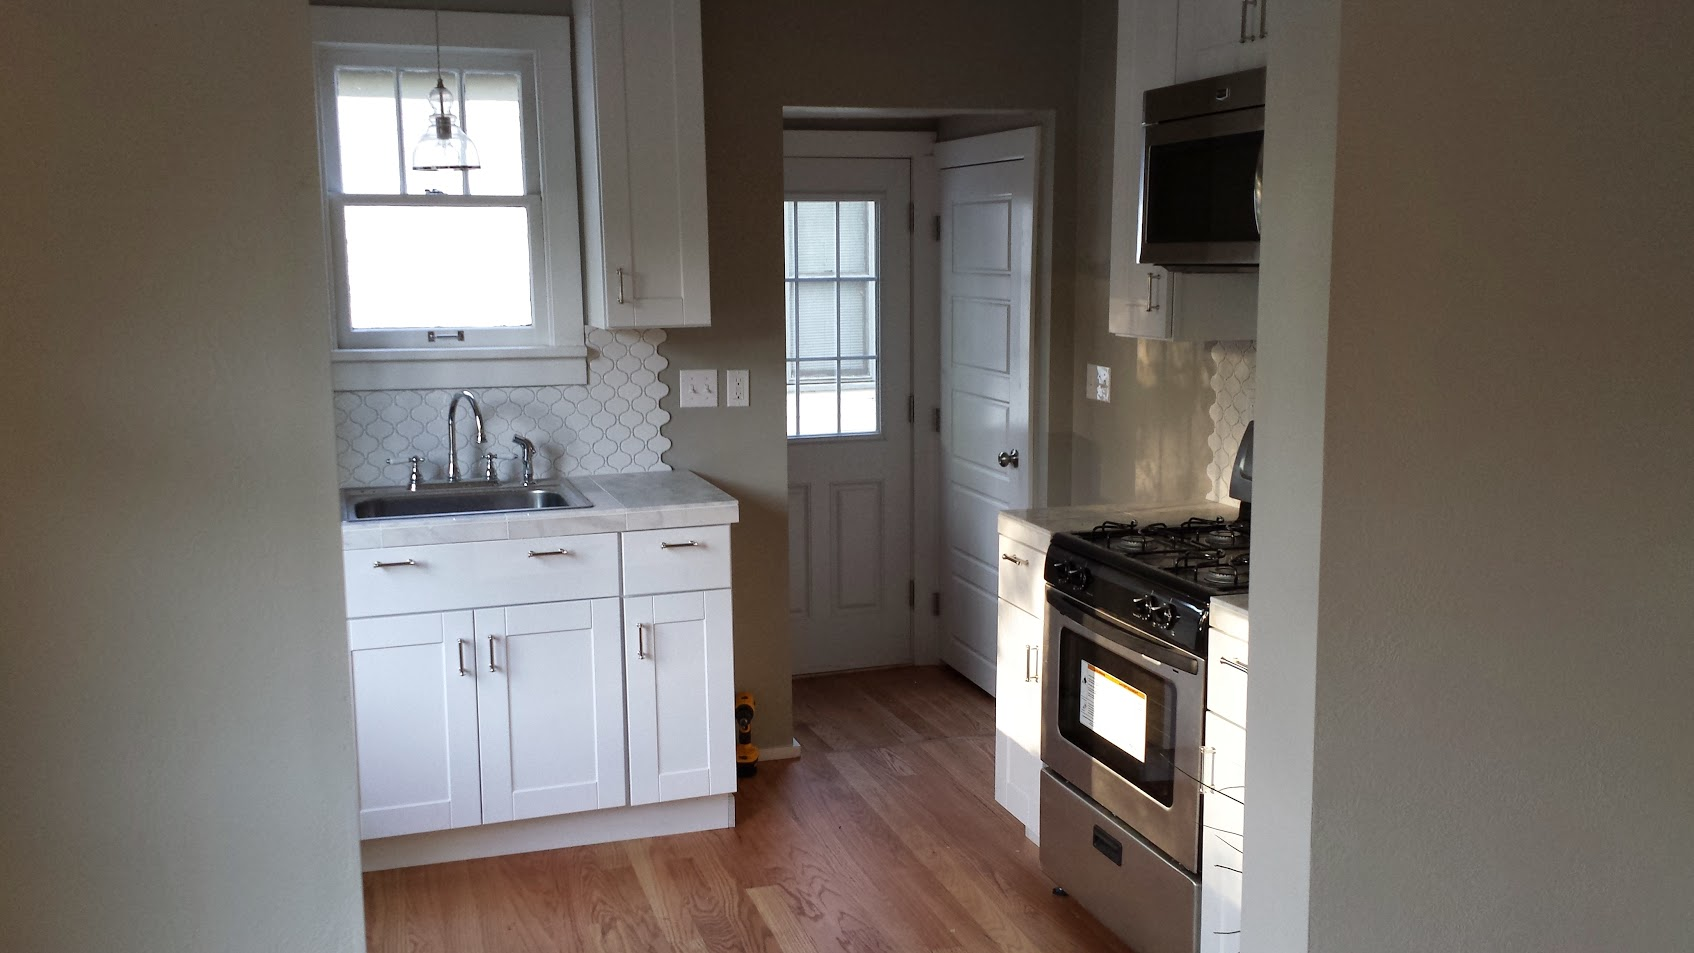 Get The Kitchen Youu0027ve Always Dreamed Of By Contacting Parker LLC Today For  Kitchen Renovations In Boise, ID.